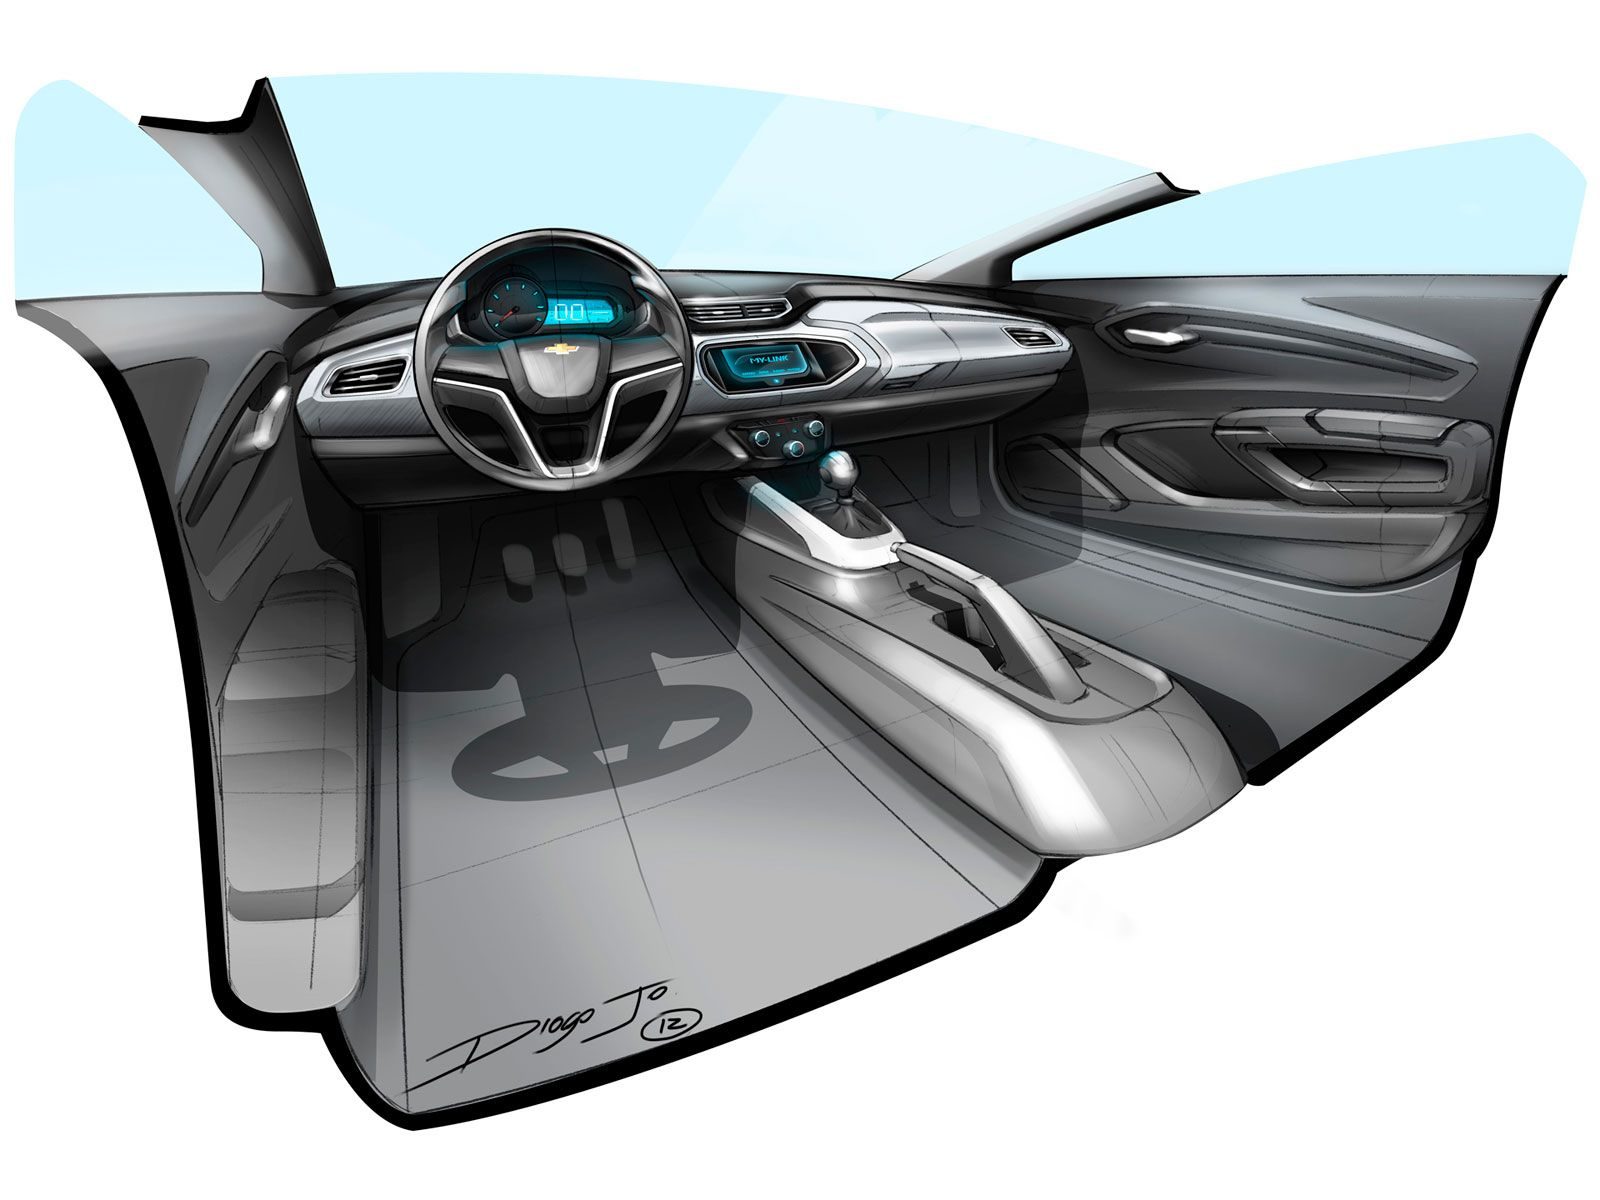 Chevrolet Onix Interior Design Sketch Sketches Pinterest